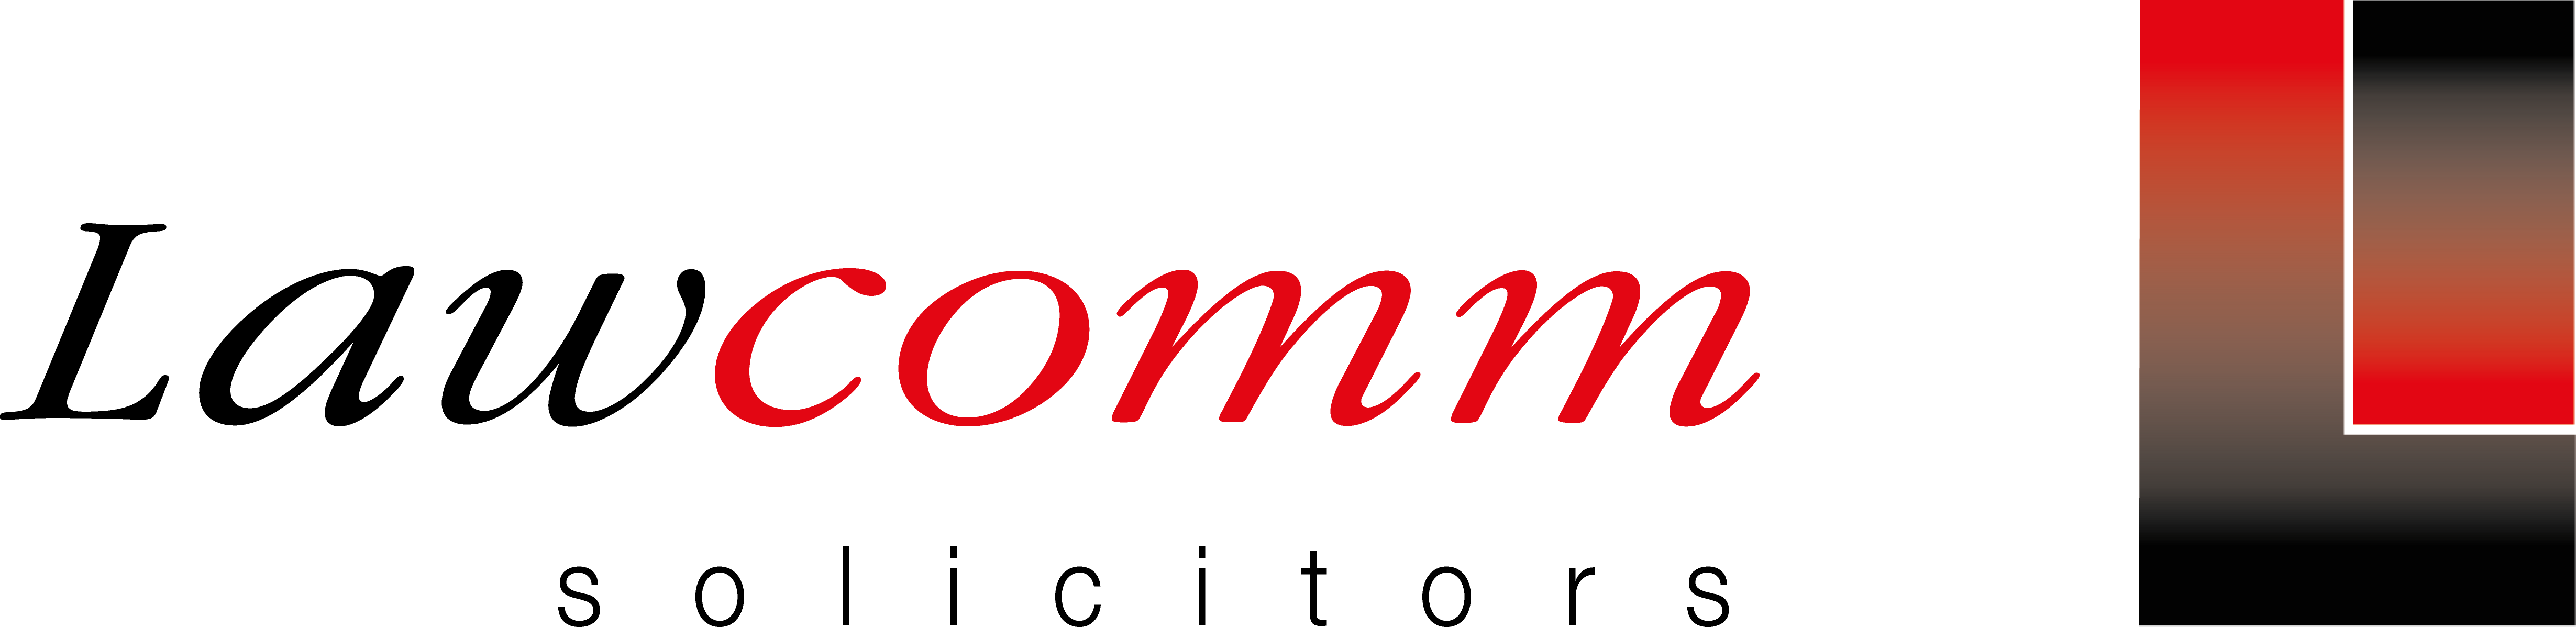 Lawcomm Solicitors Logo